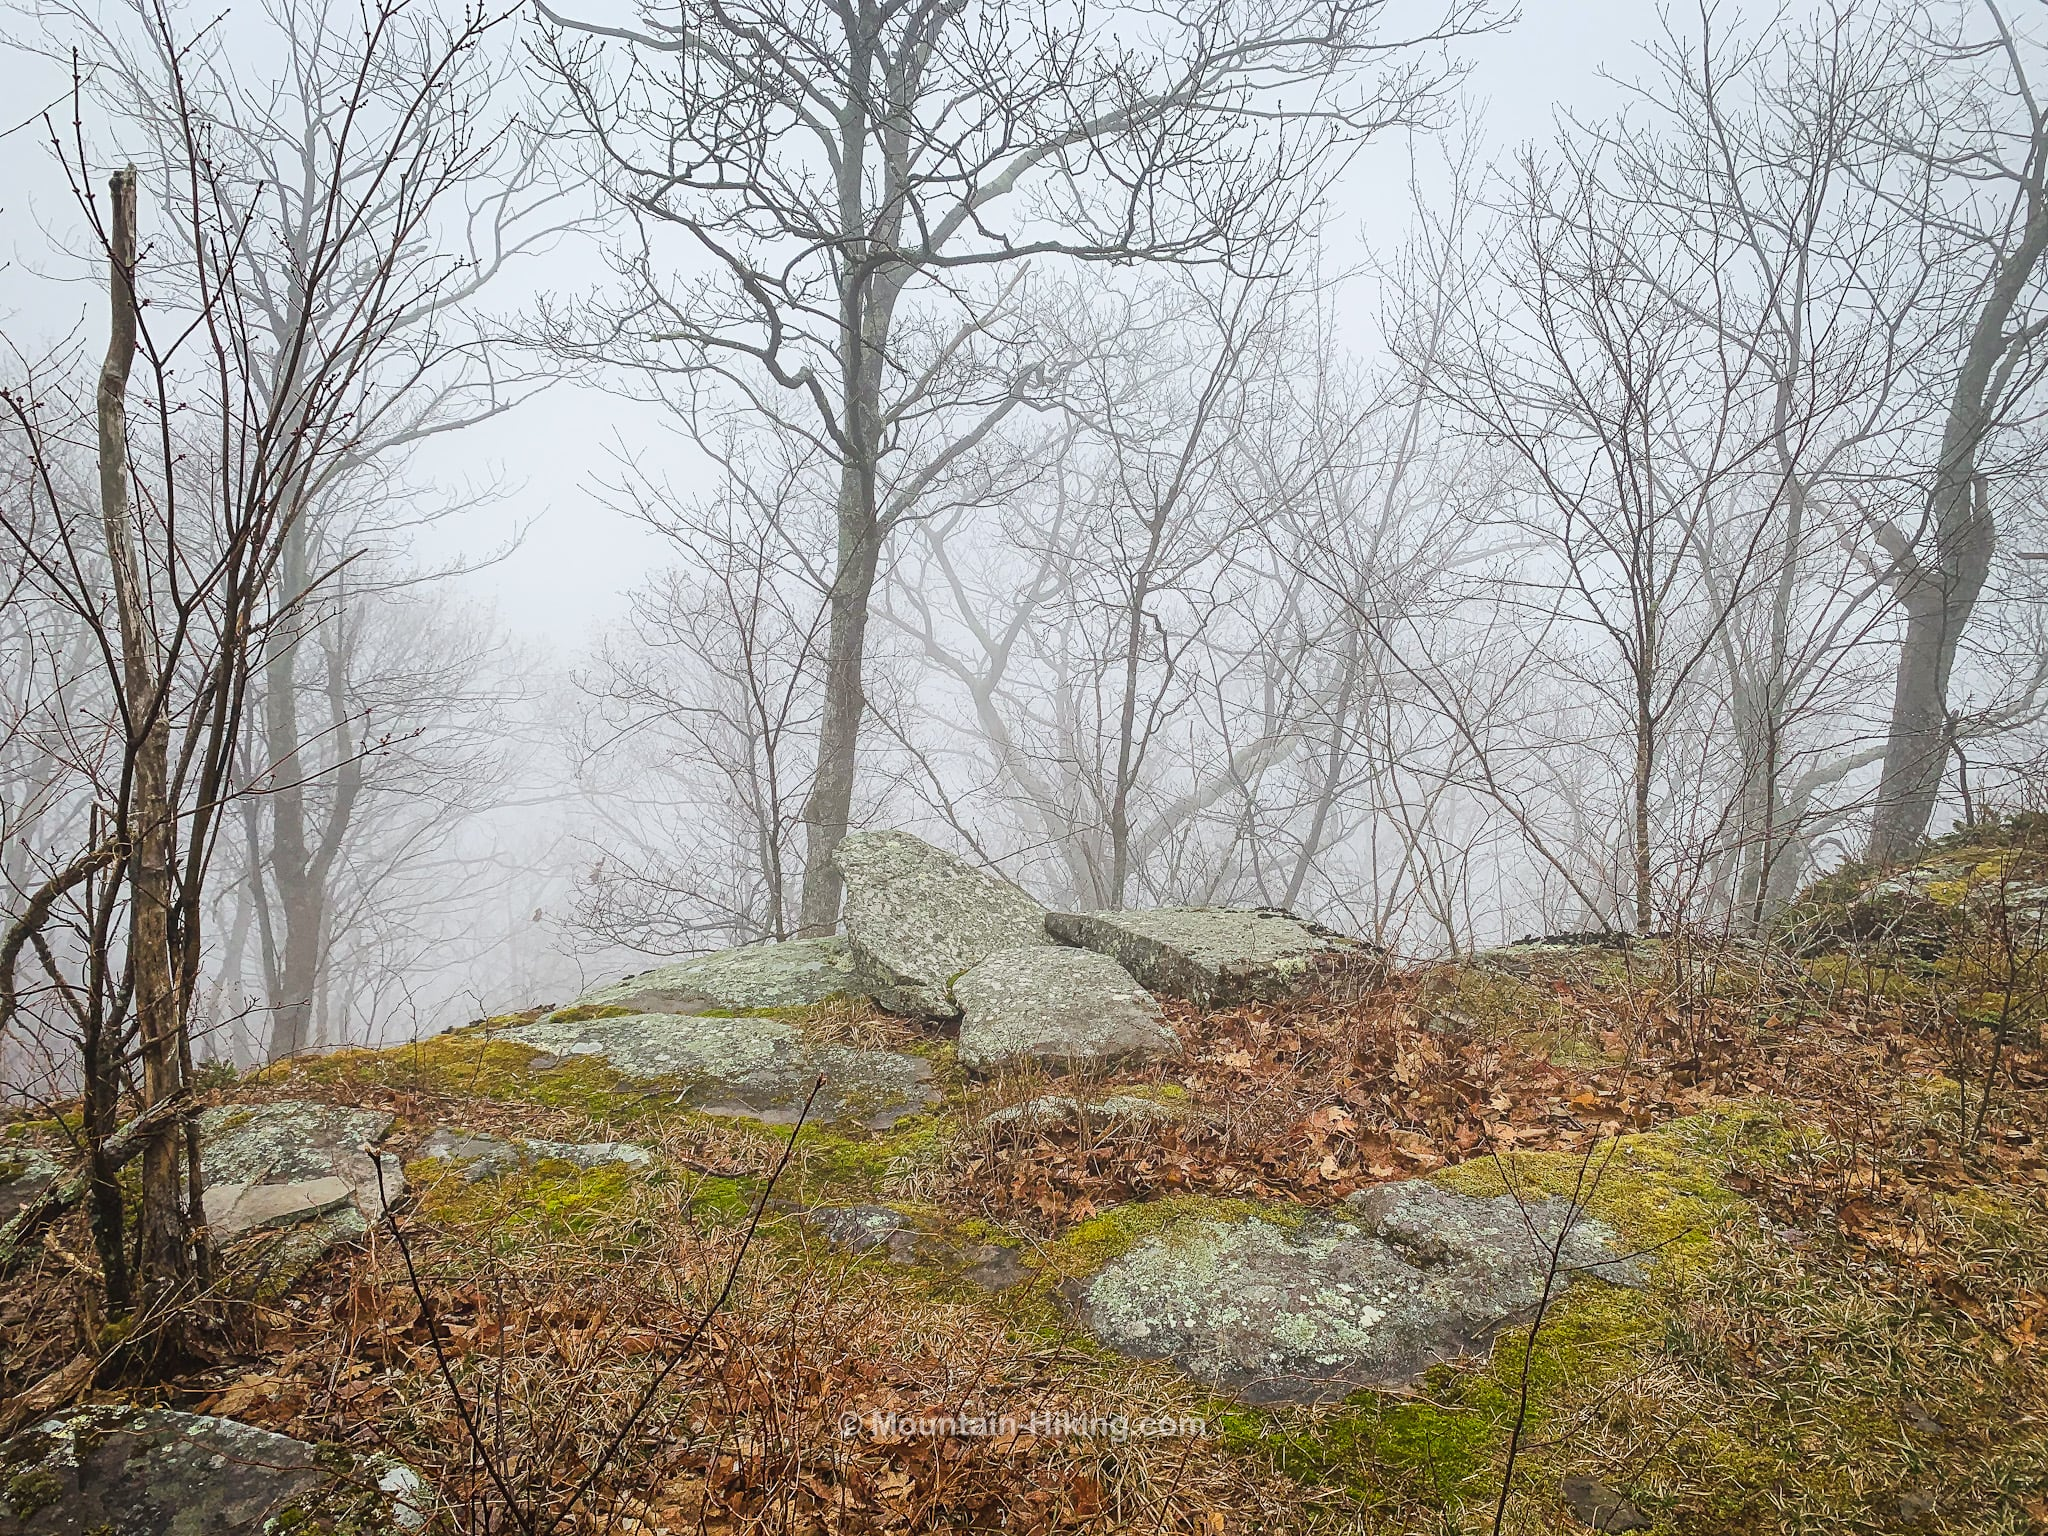 foggy view from scenic mountain ledge